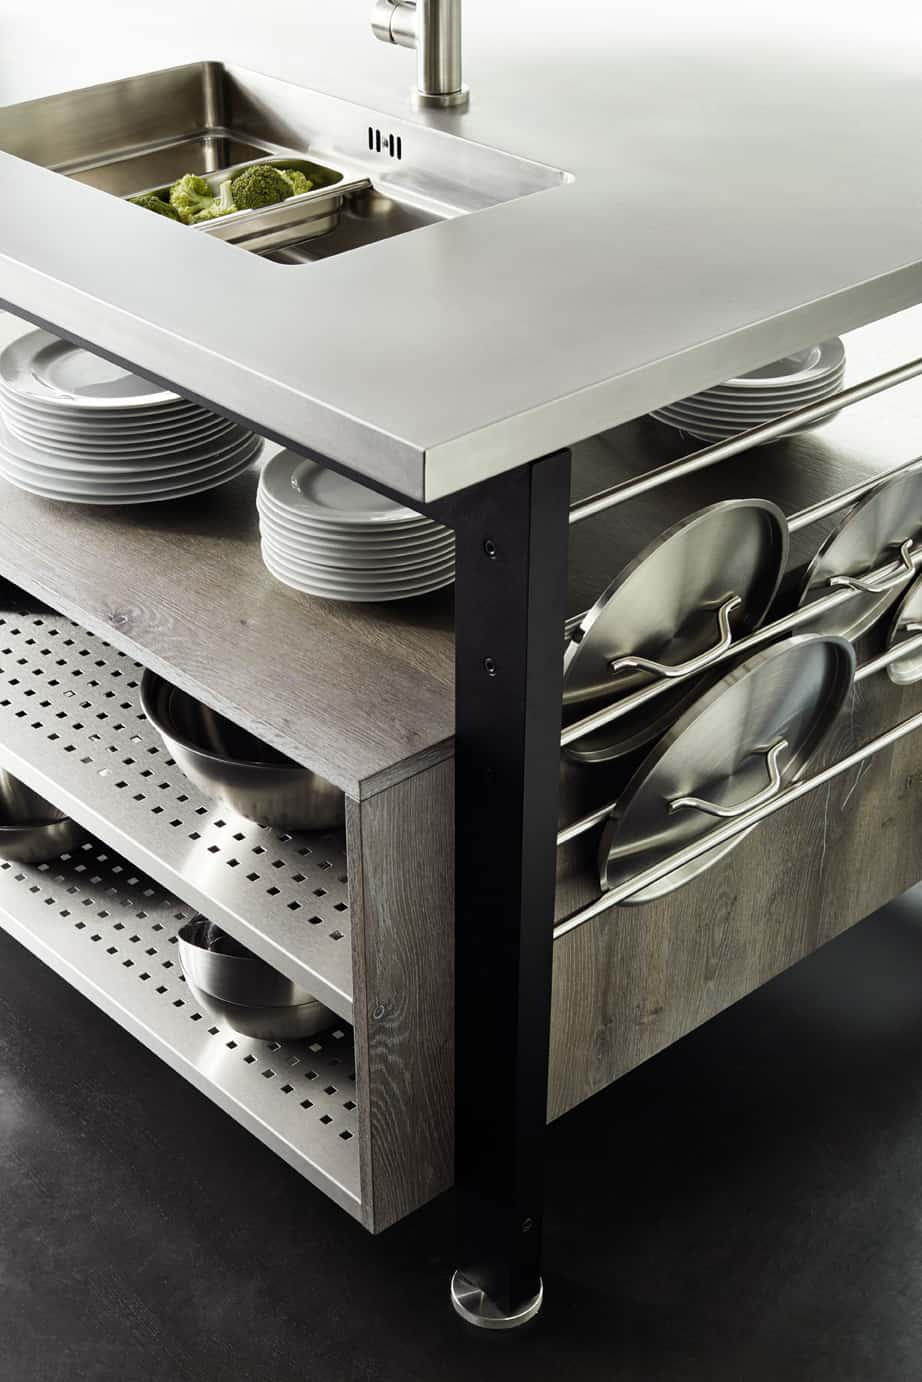 Works Islands with open airflow shelves and lid storage